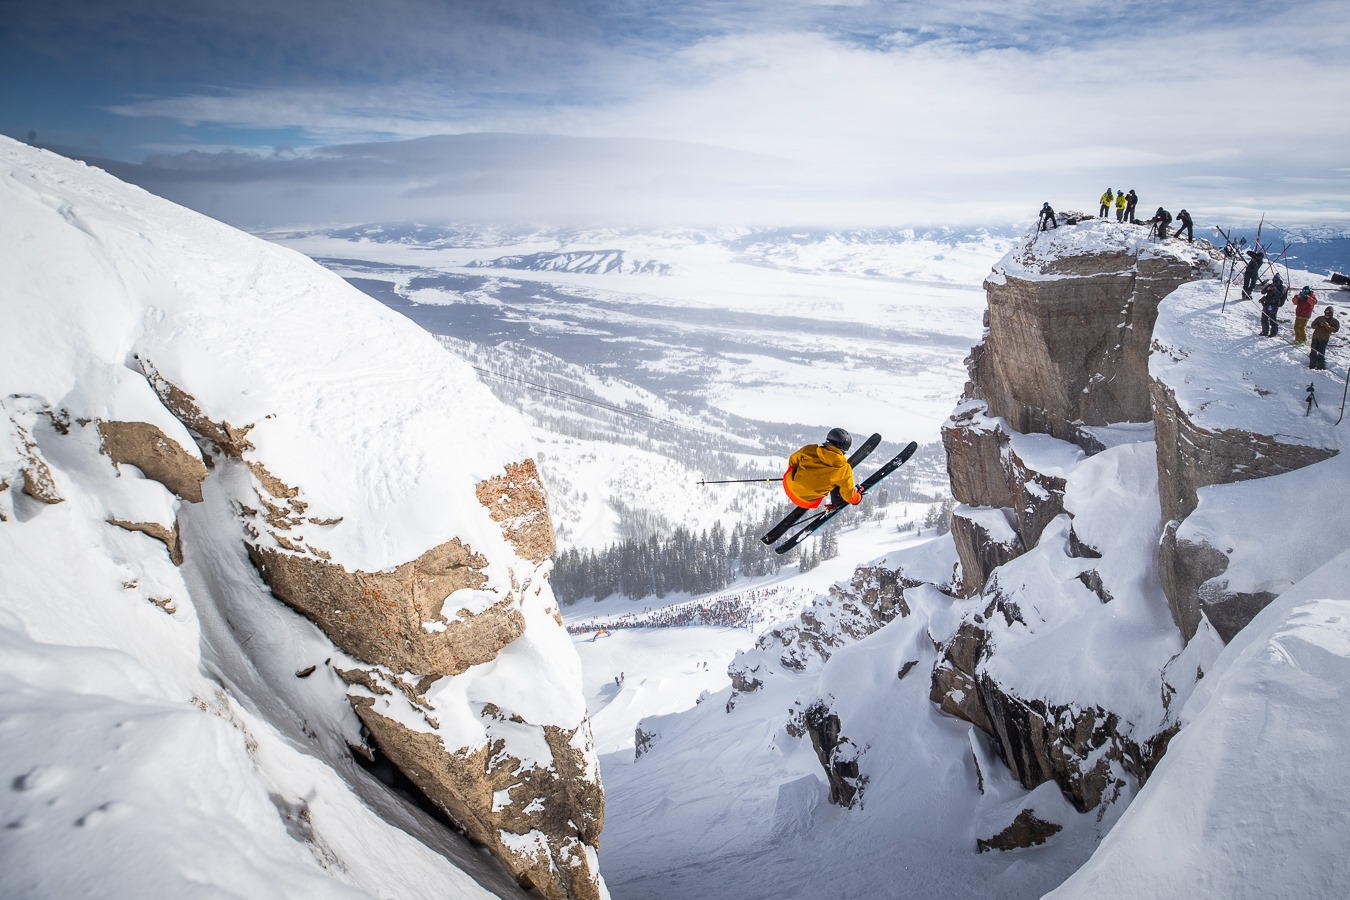 Image of a skier in orange making a massive jump between snow covered rocks at Jackson Hole Mountain Resort in Wyoming